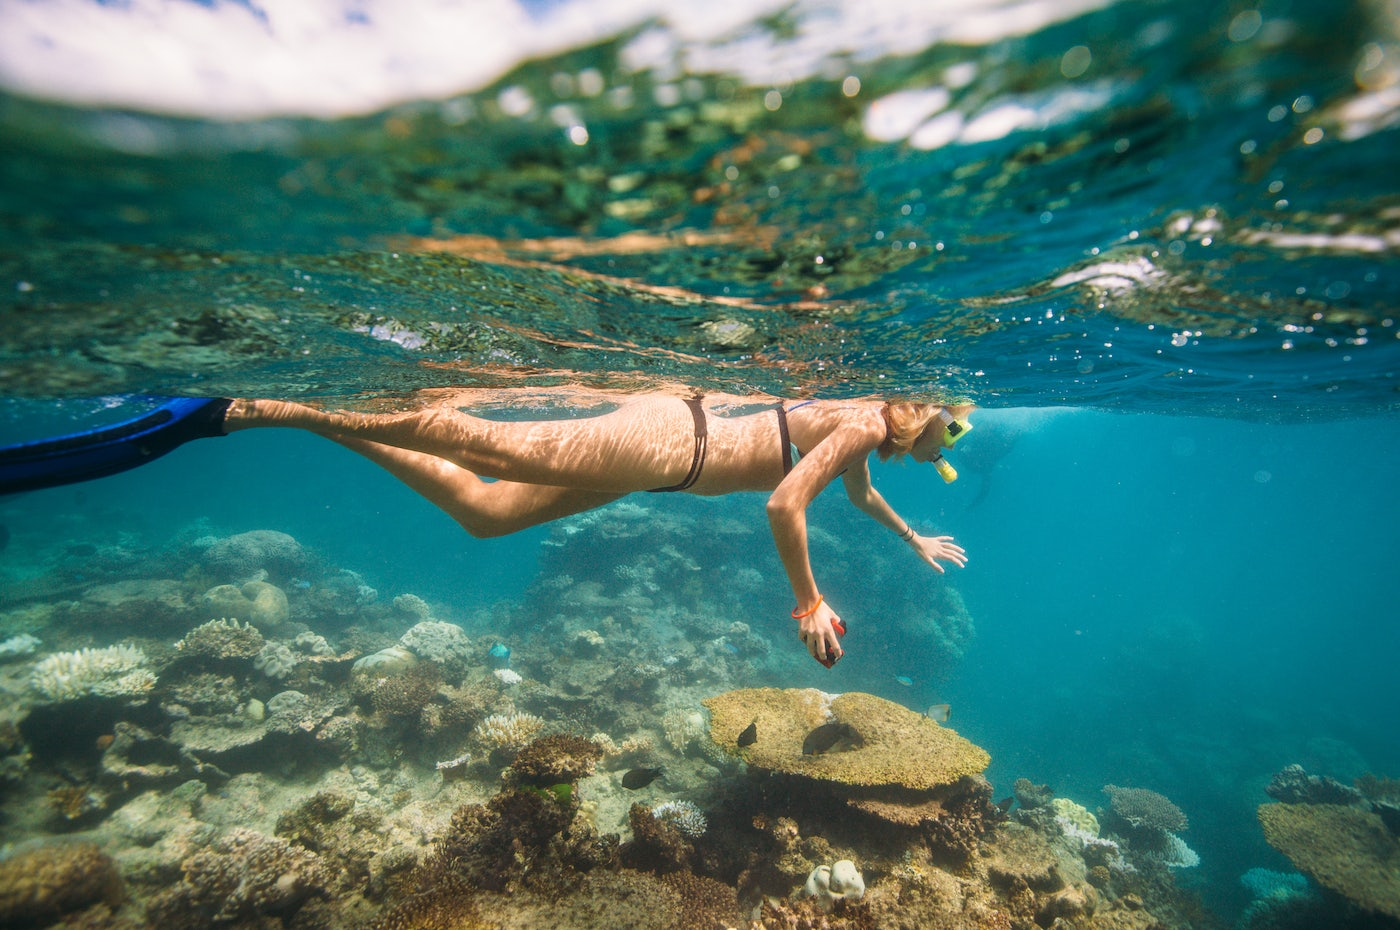 Snorkeling at the Great Barrier Reef Cairns